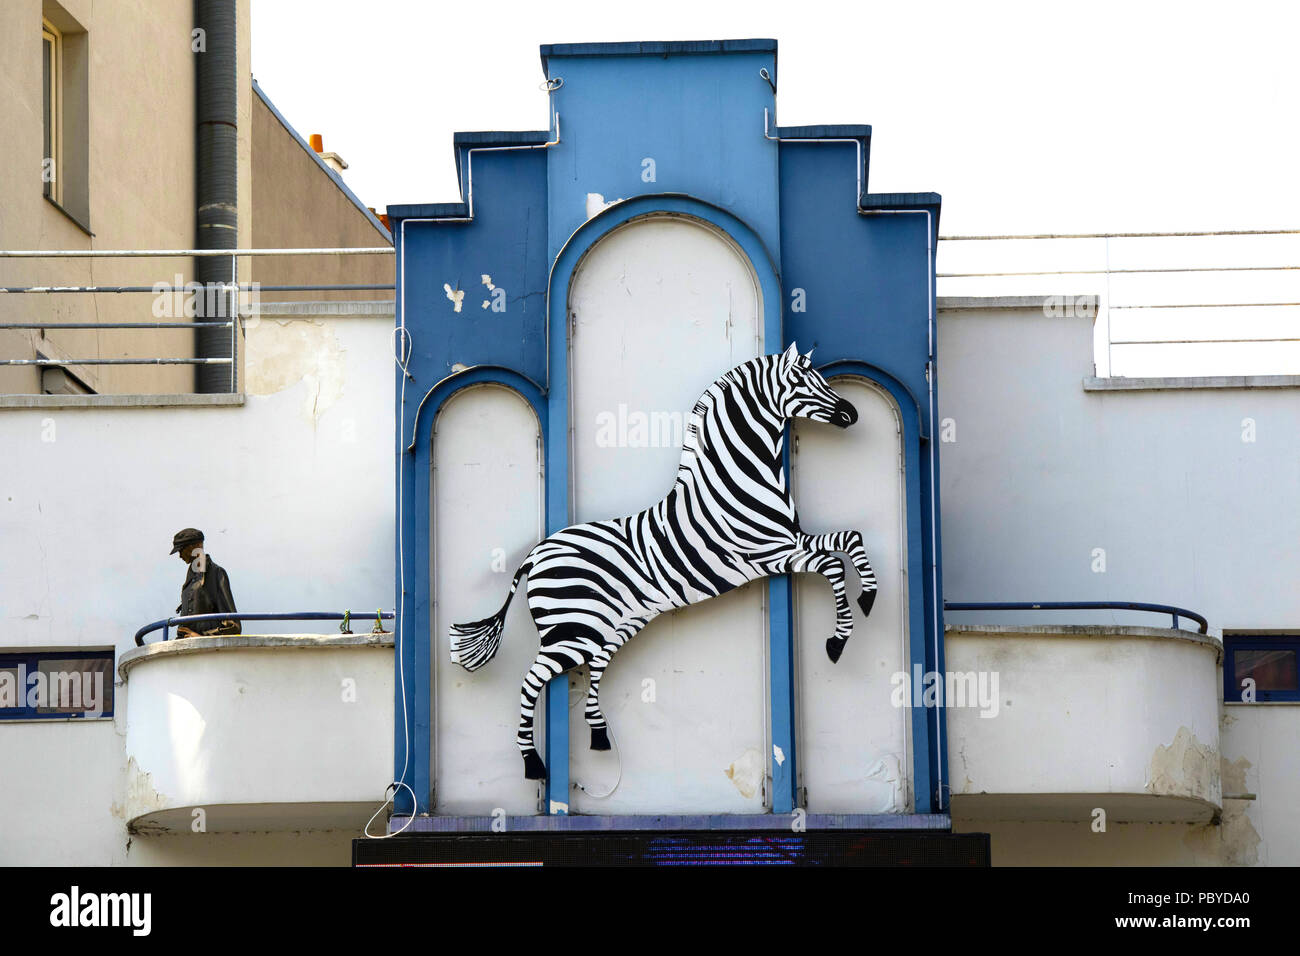 Upper part of a former cinema in Belleville, Paris, with jumping zebra and a shop mannequin that has seen better days...now the home of cabaret/circus - Stock Image